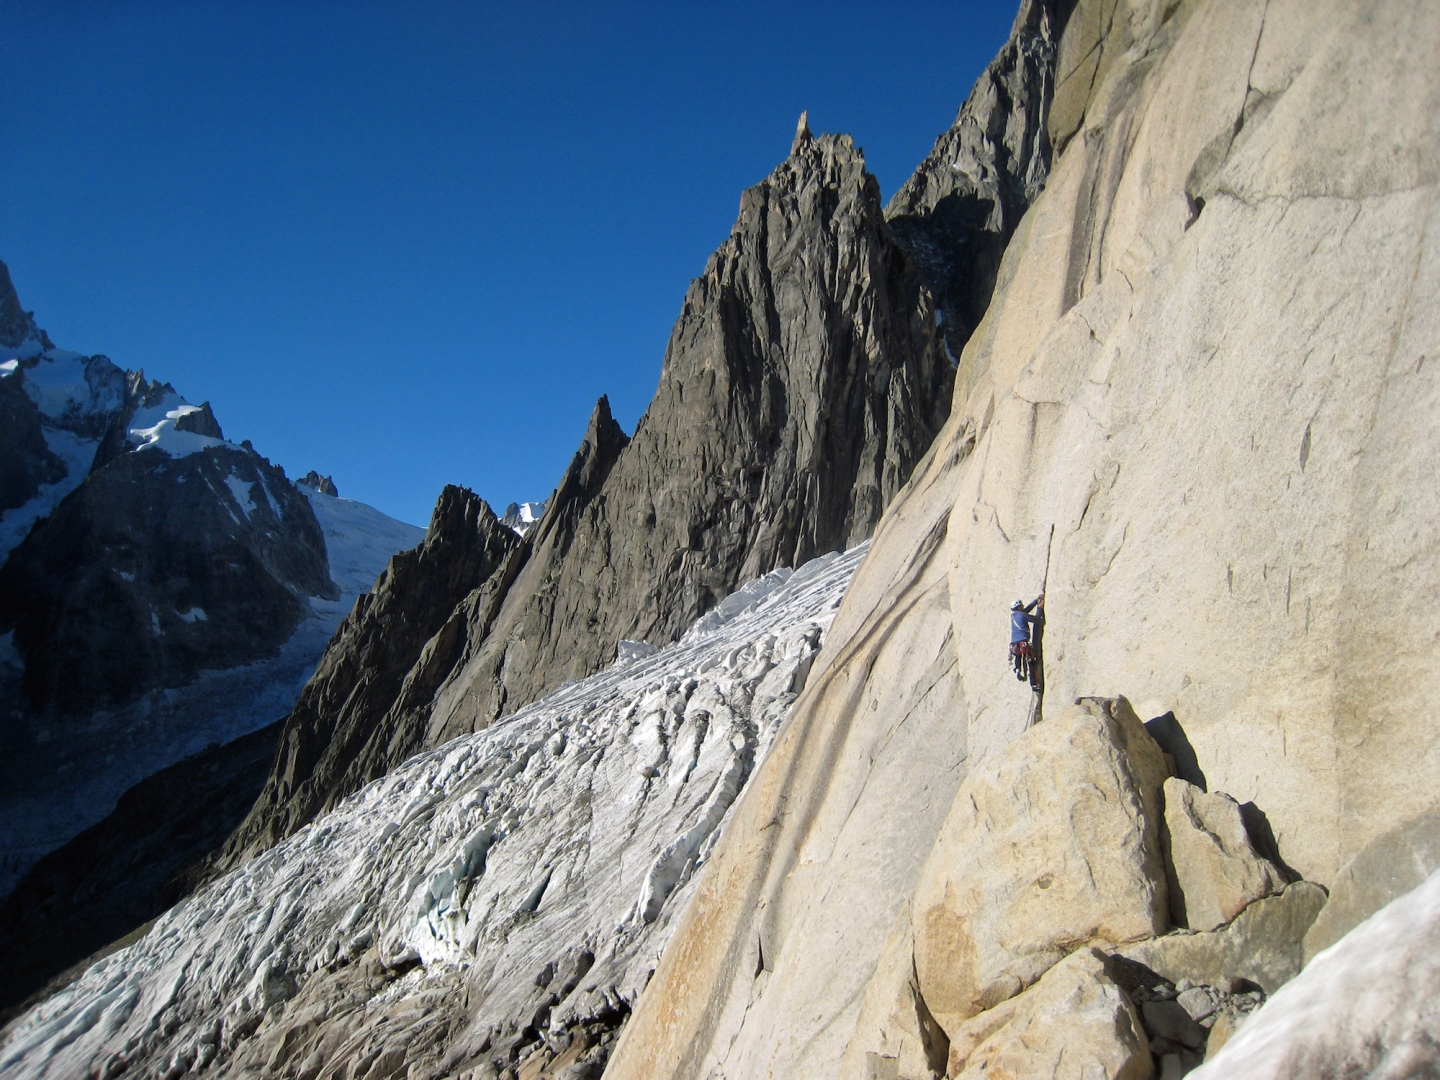 Ross Hewitt Guiding alpine rock 8